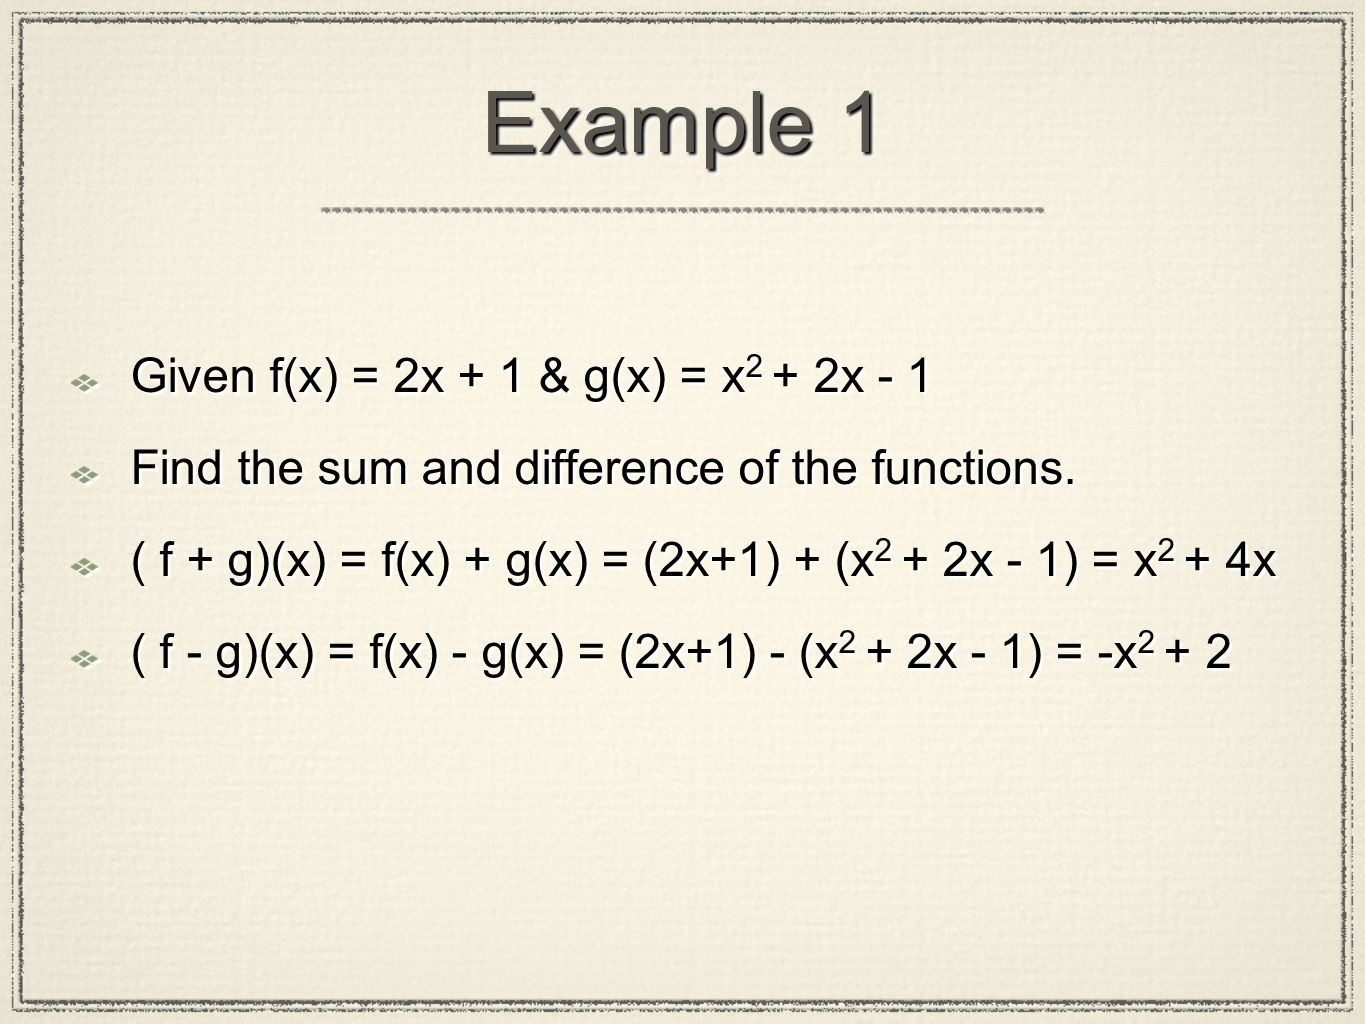 Example 1 Given f(x) = 2x + 1 & g(x) = x2 + 2x - 1